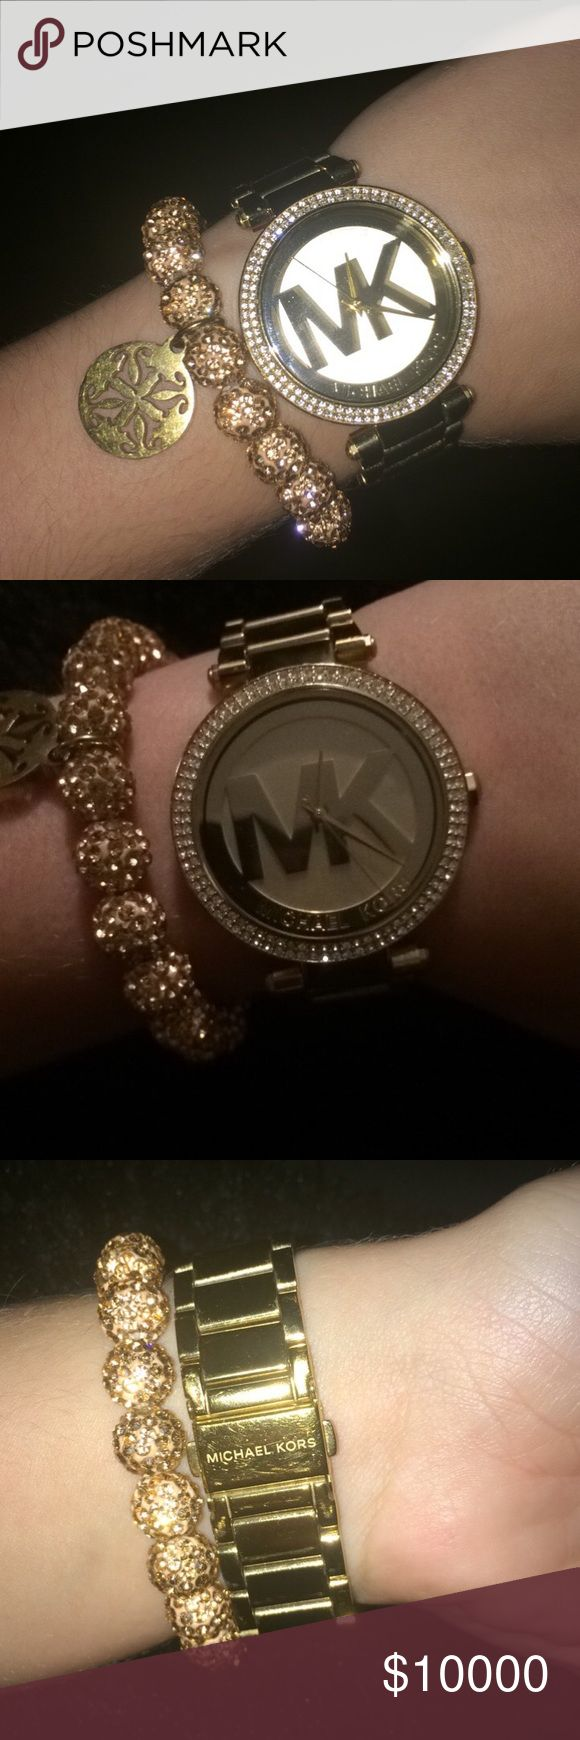 will only trade not for sale will only trade for a big bundle of VS stuff, Hunter boots, Patagonia vest in birch white, Dark grey Kate spade or MK, maroon Kate spade or mk, or Tory burch sandals. thanks Michael Kors Accessories Watches